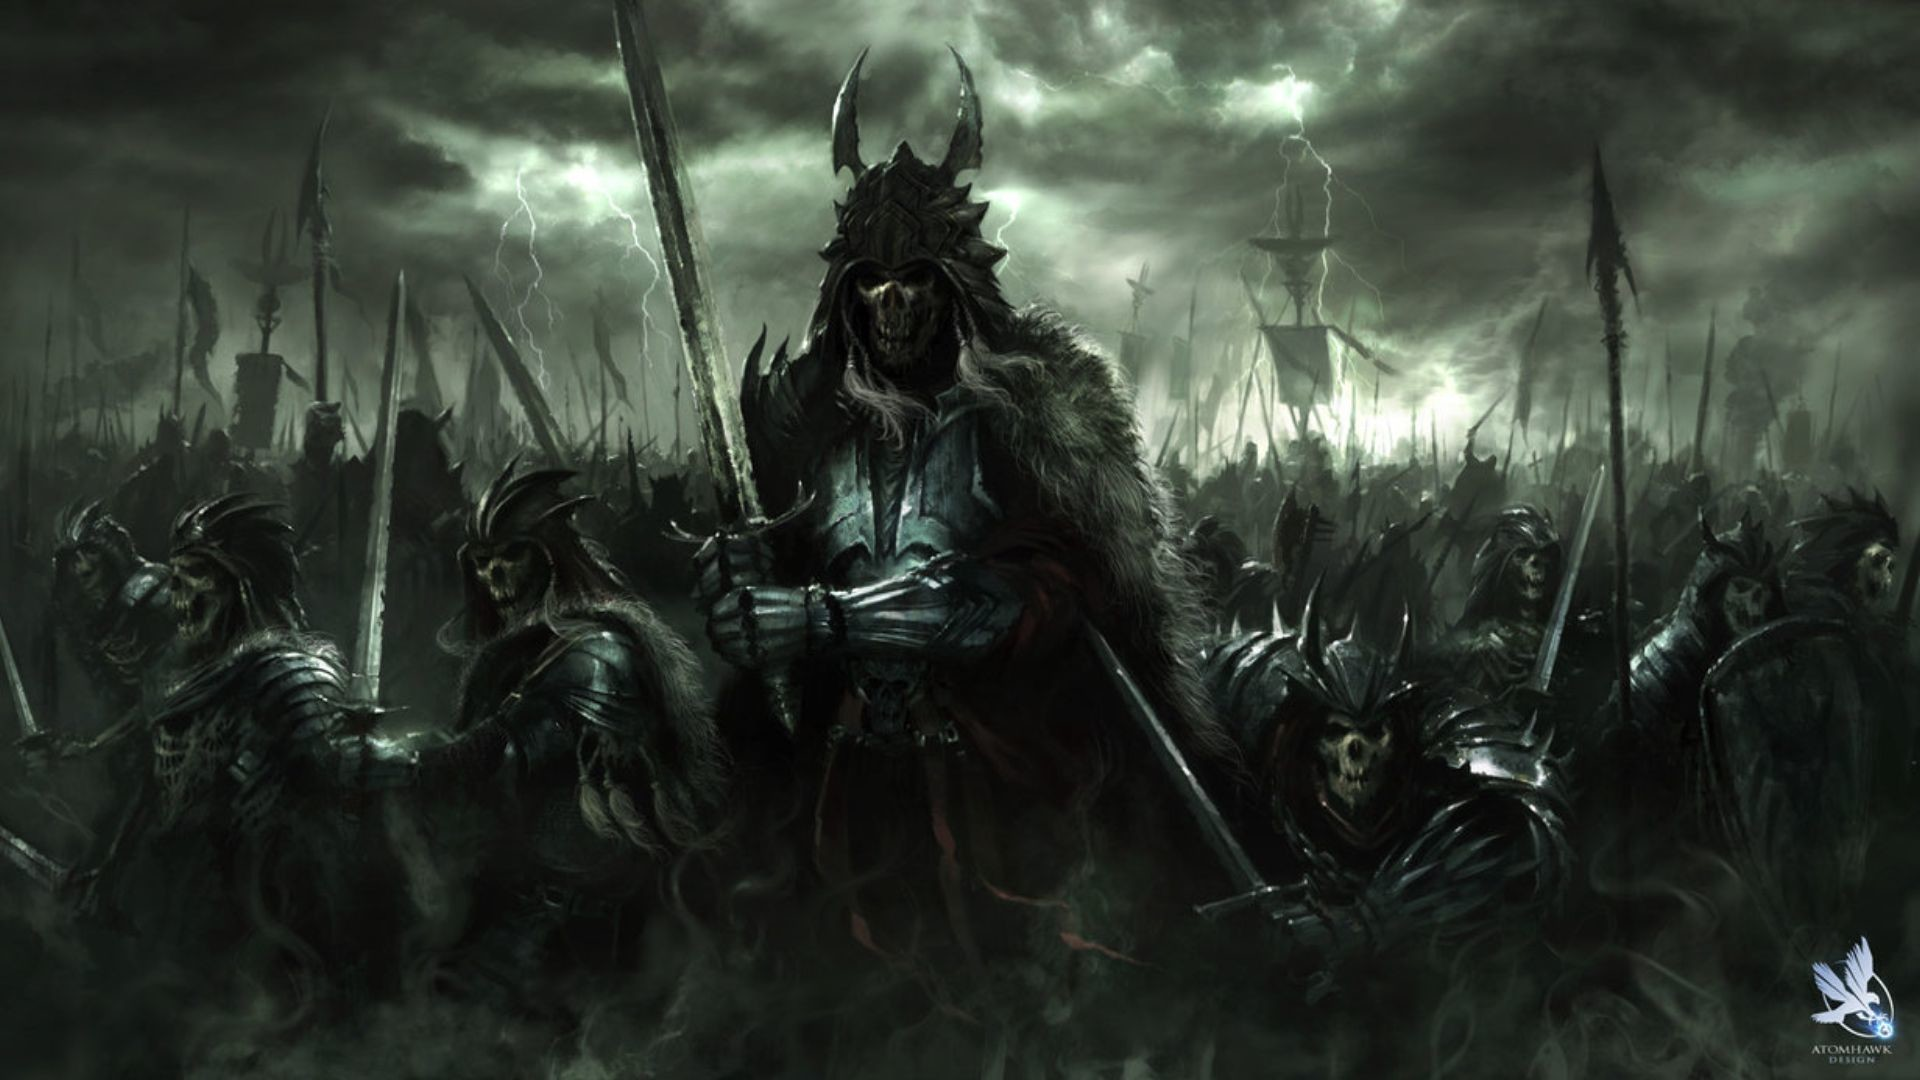 1920x1080 ... Fantasy Art Dark Horror Demon Skull Warrior Wepons Army Wallpaper ...